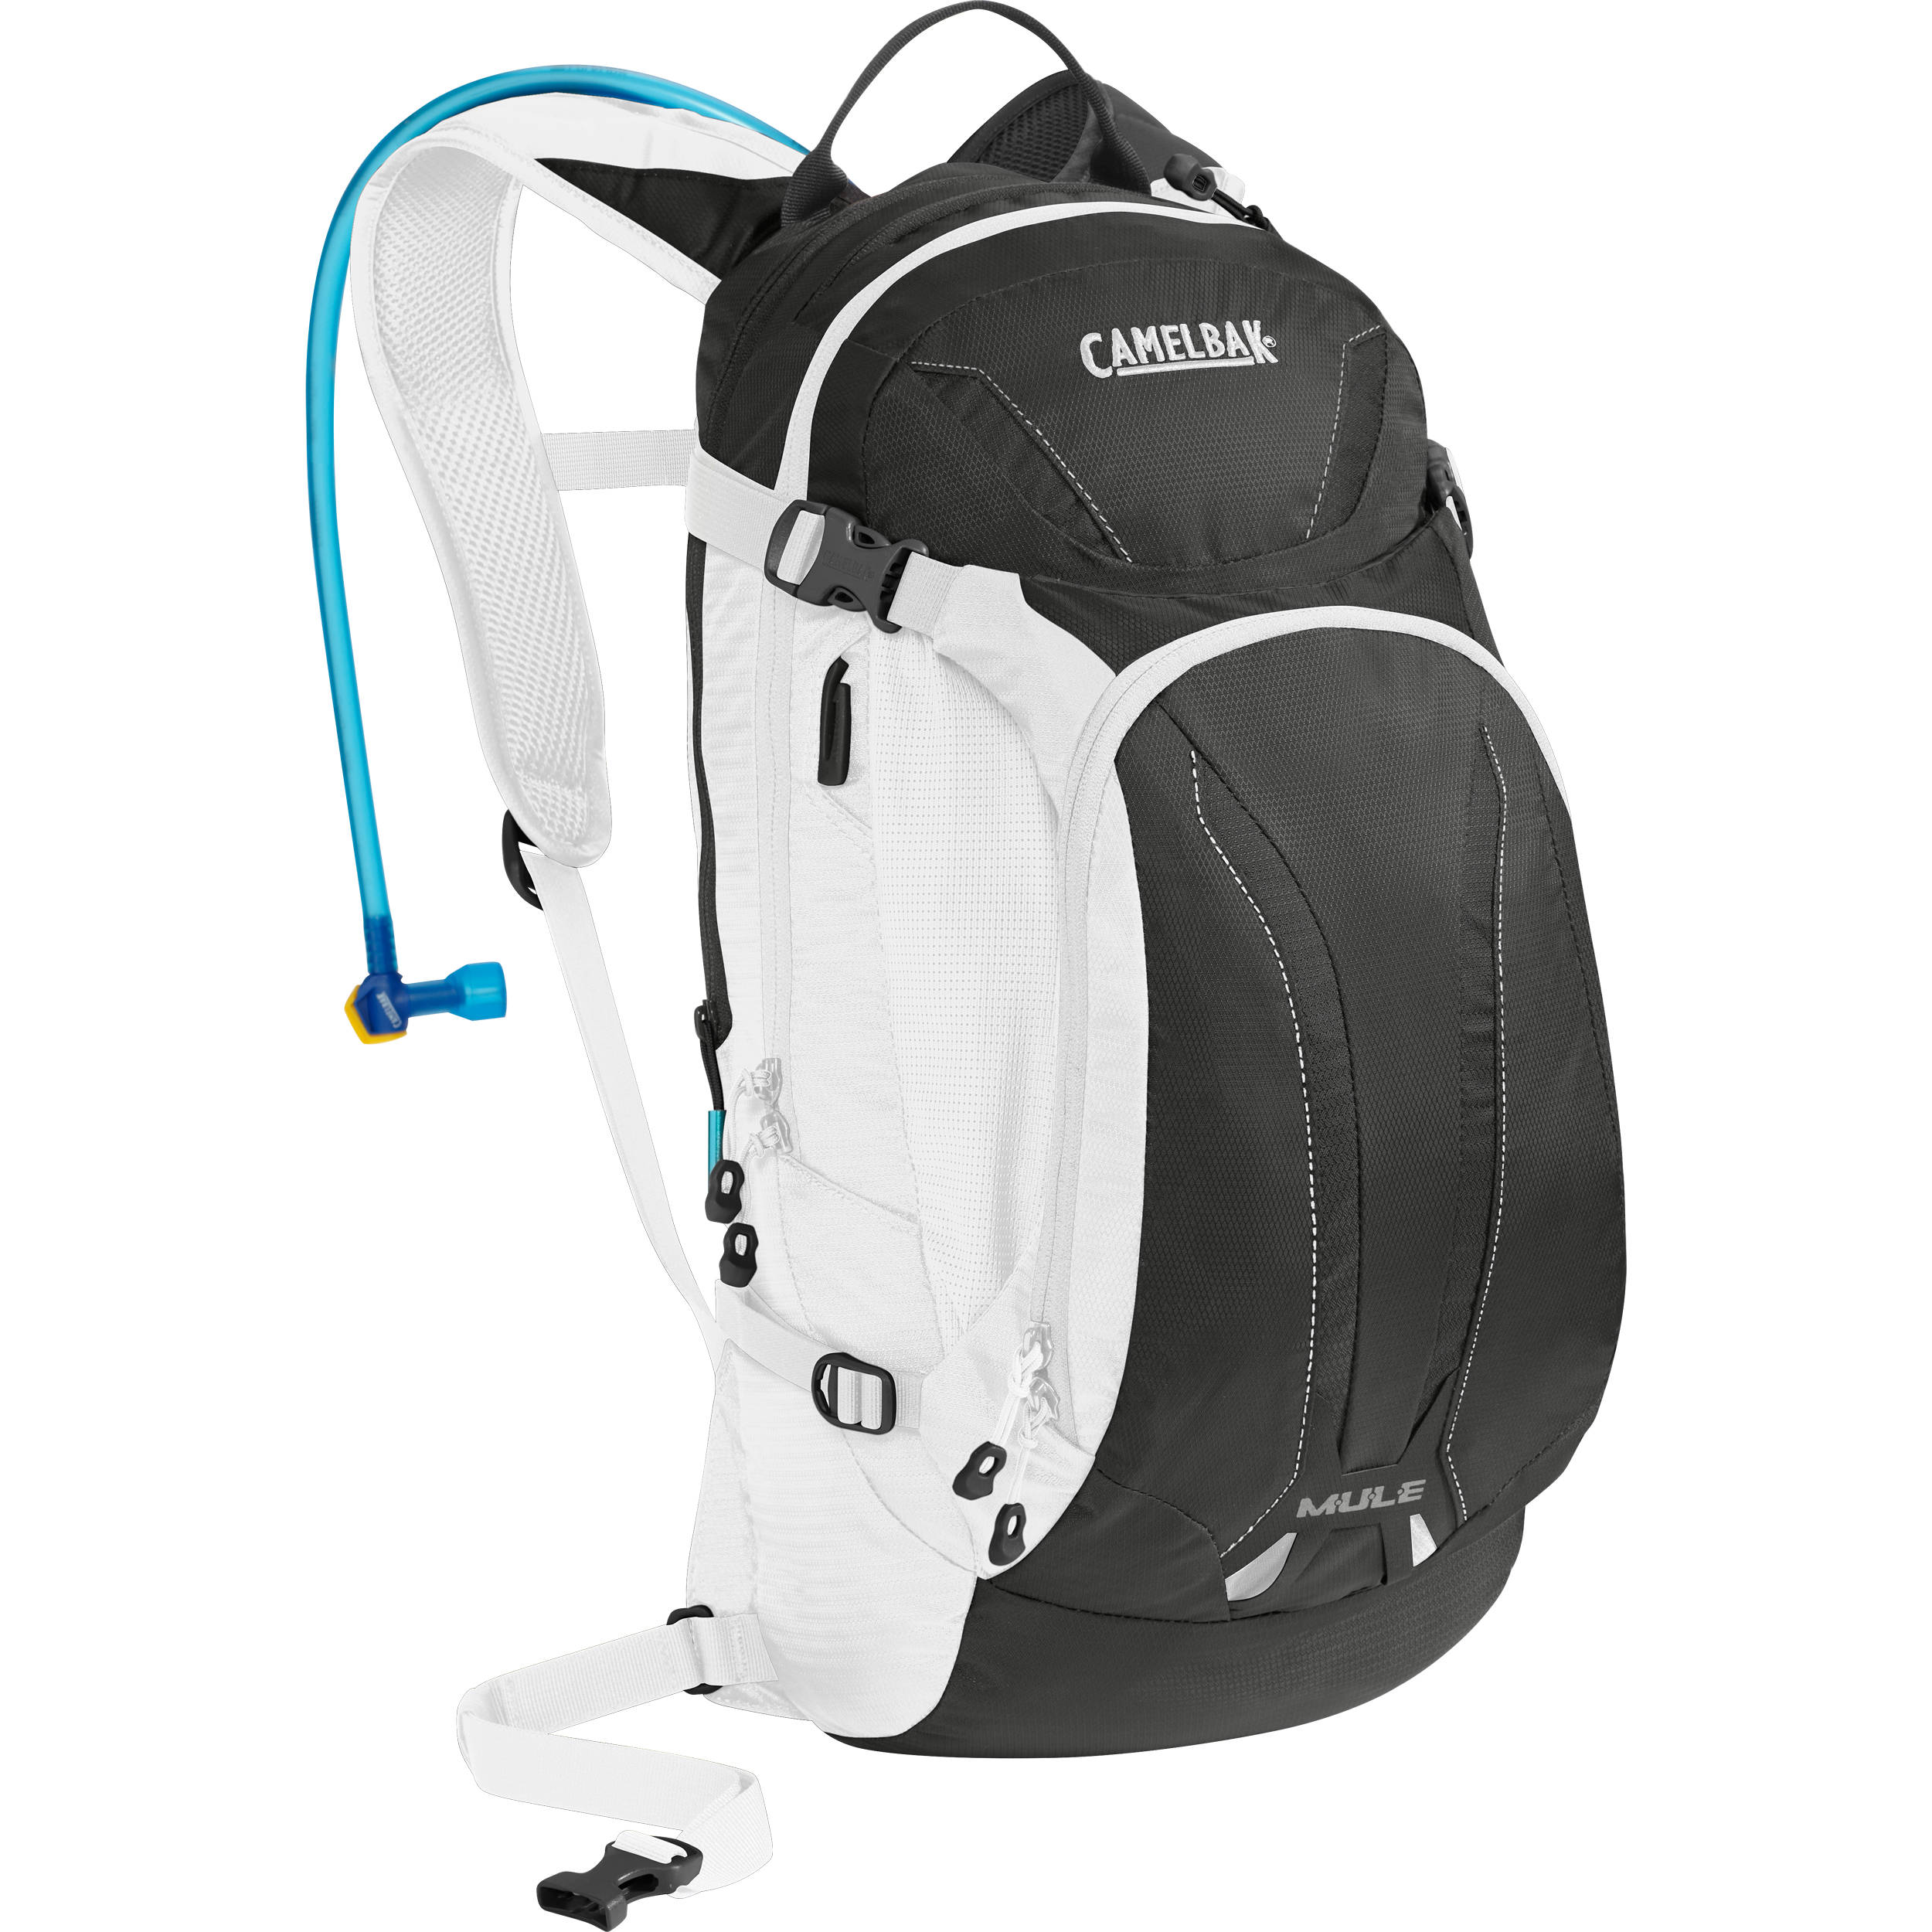 b1c9b5b5672 CAMELBAK M.U.L.E. 9L Hydration Bike Pack with 3L Reservoir (Charcoal/White)